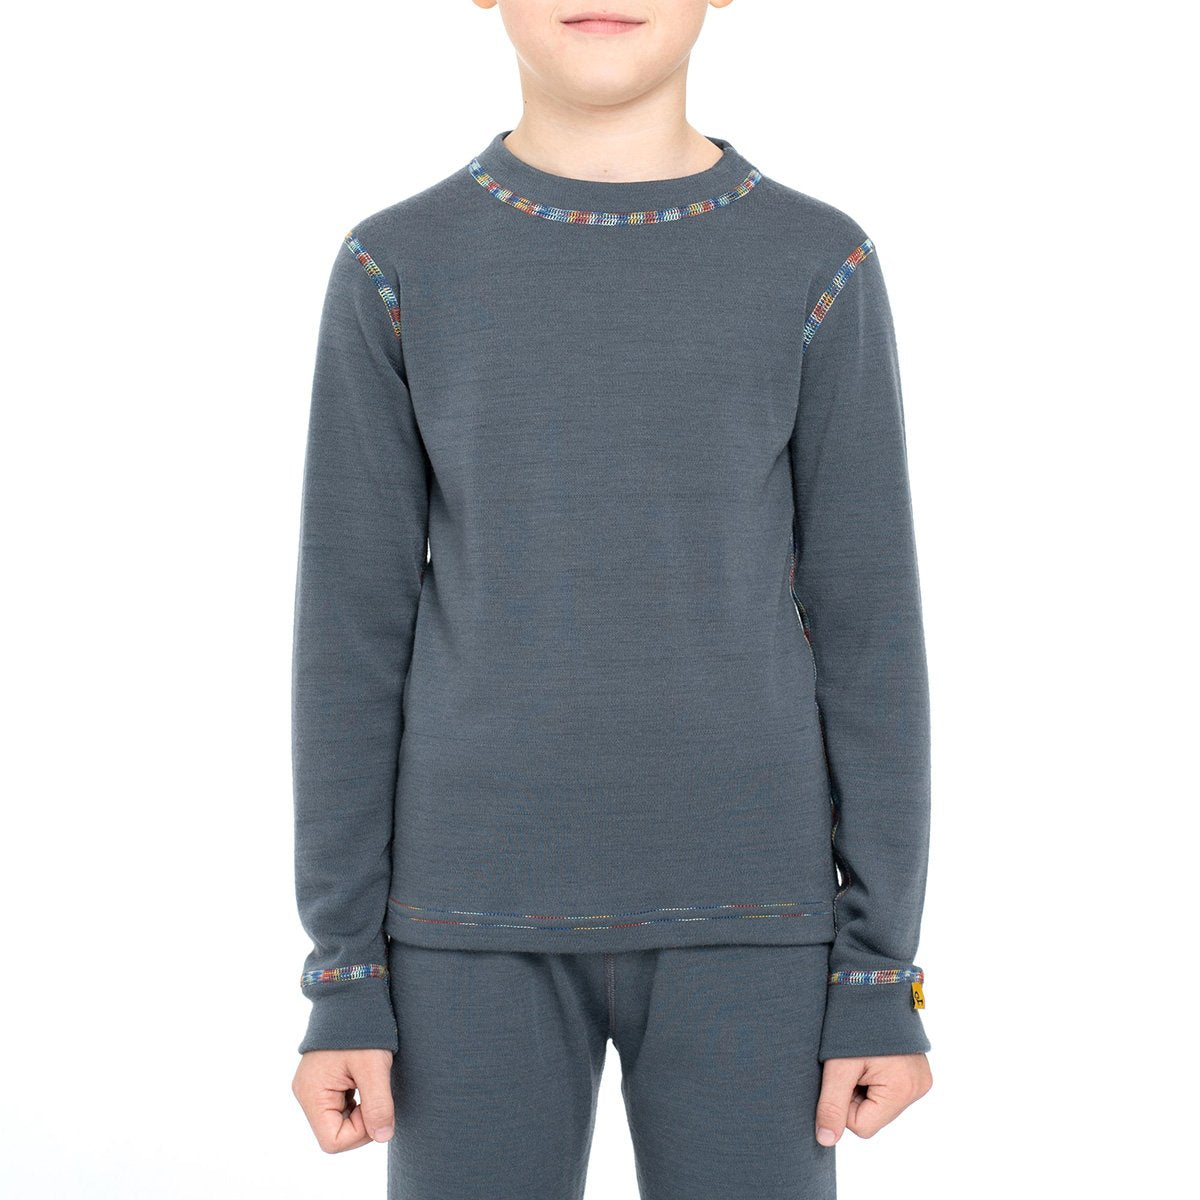 menique Kids' Merino 250 Long Sleeve Crew Perfect Grey Color